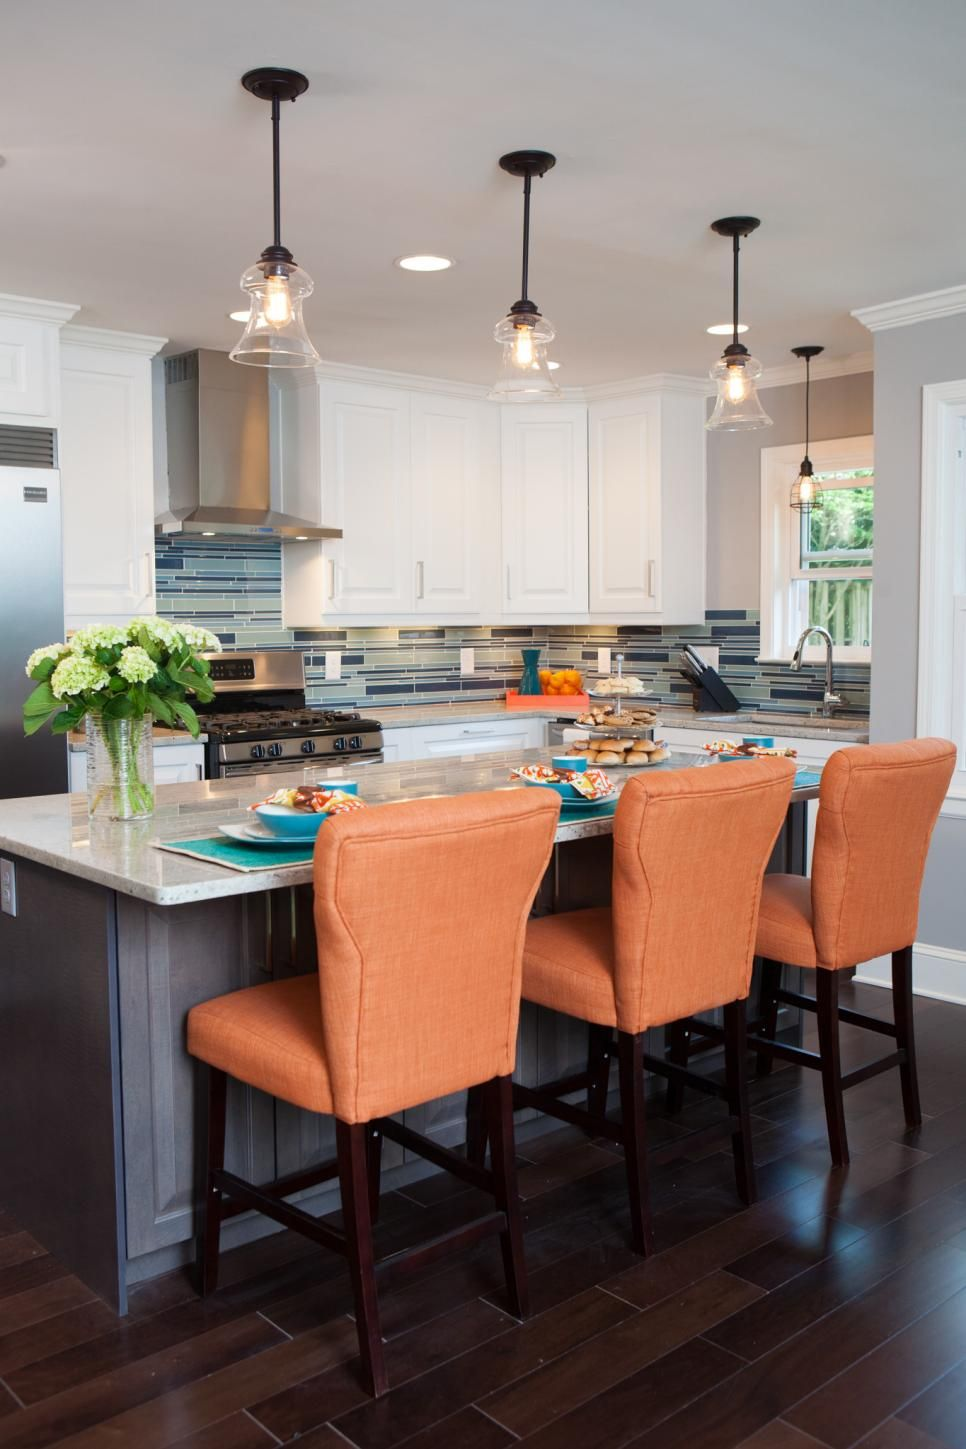 32 Design Tips We Learned From the Property Brothers | Home Design ...